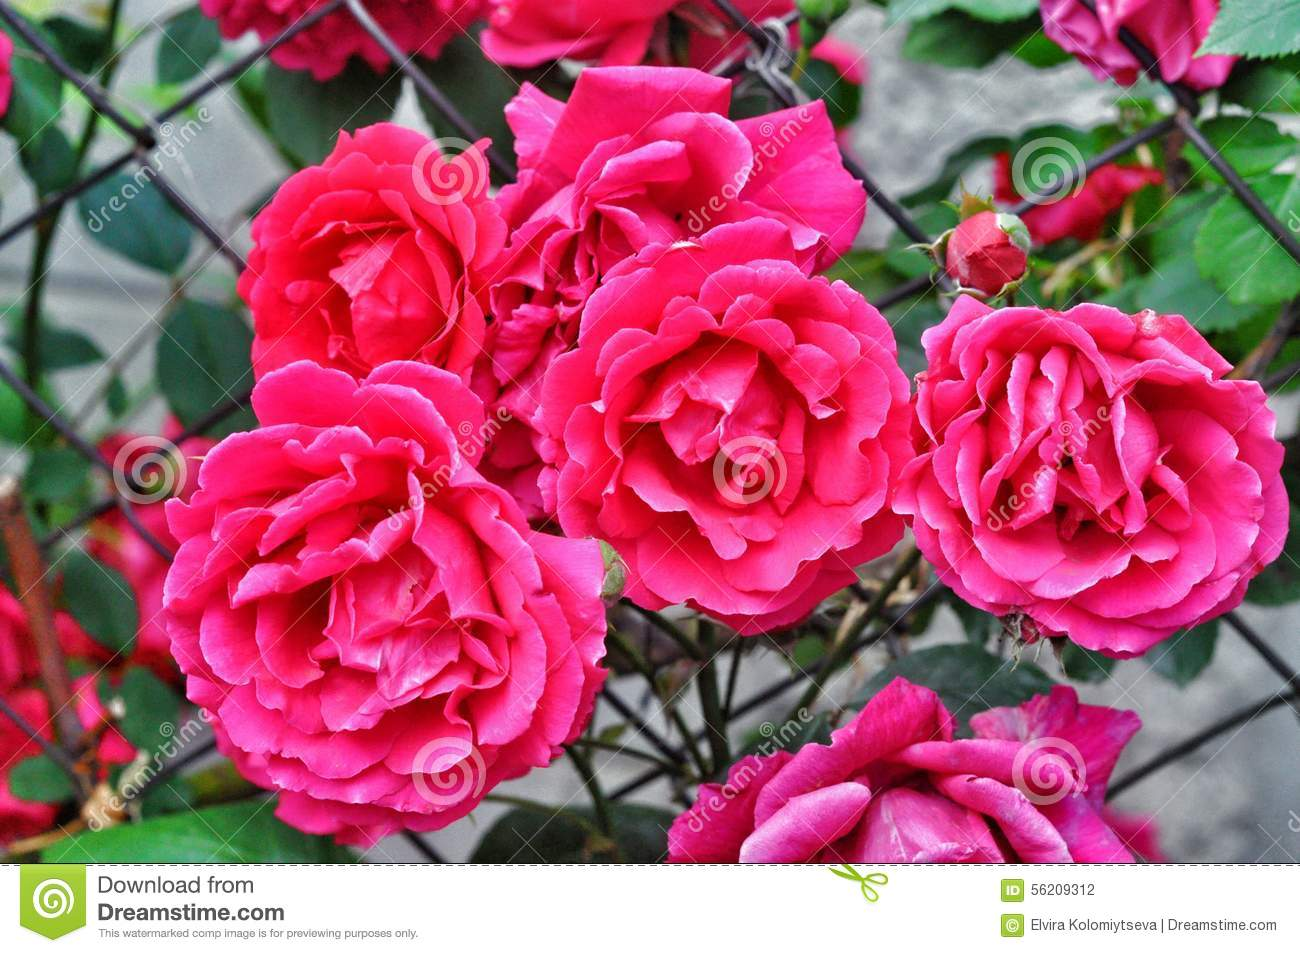 Shrub roses soft colors royalty free stock image for Natural rose colors